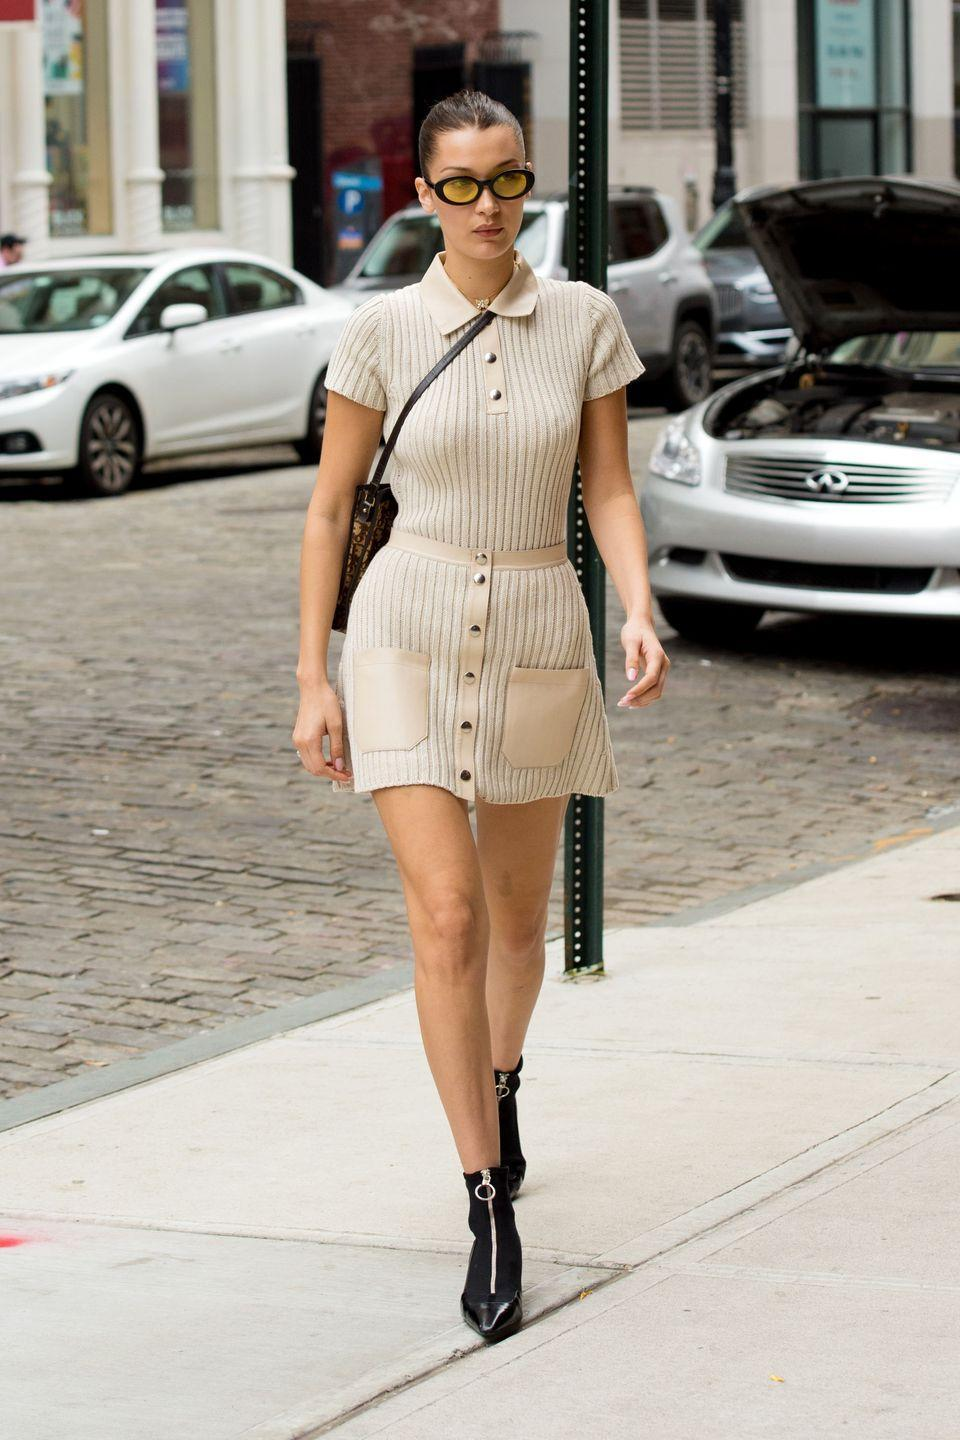 <p>In a nude ribbed polo and skirt by Alyx, Dior sling bag, pointed-toe zip-up boots, and yellow-tinted sunglasses while out in New York.</p>